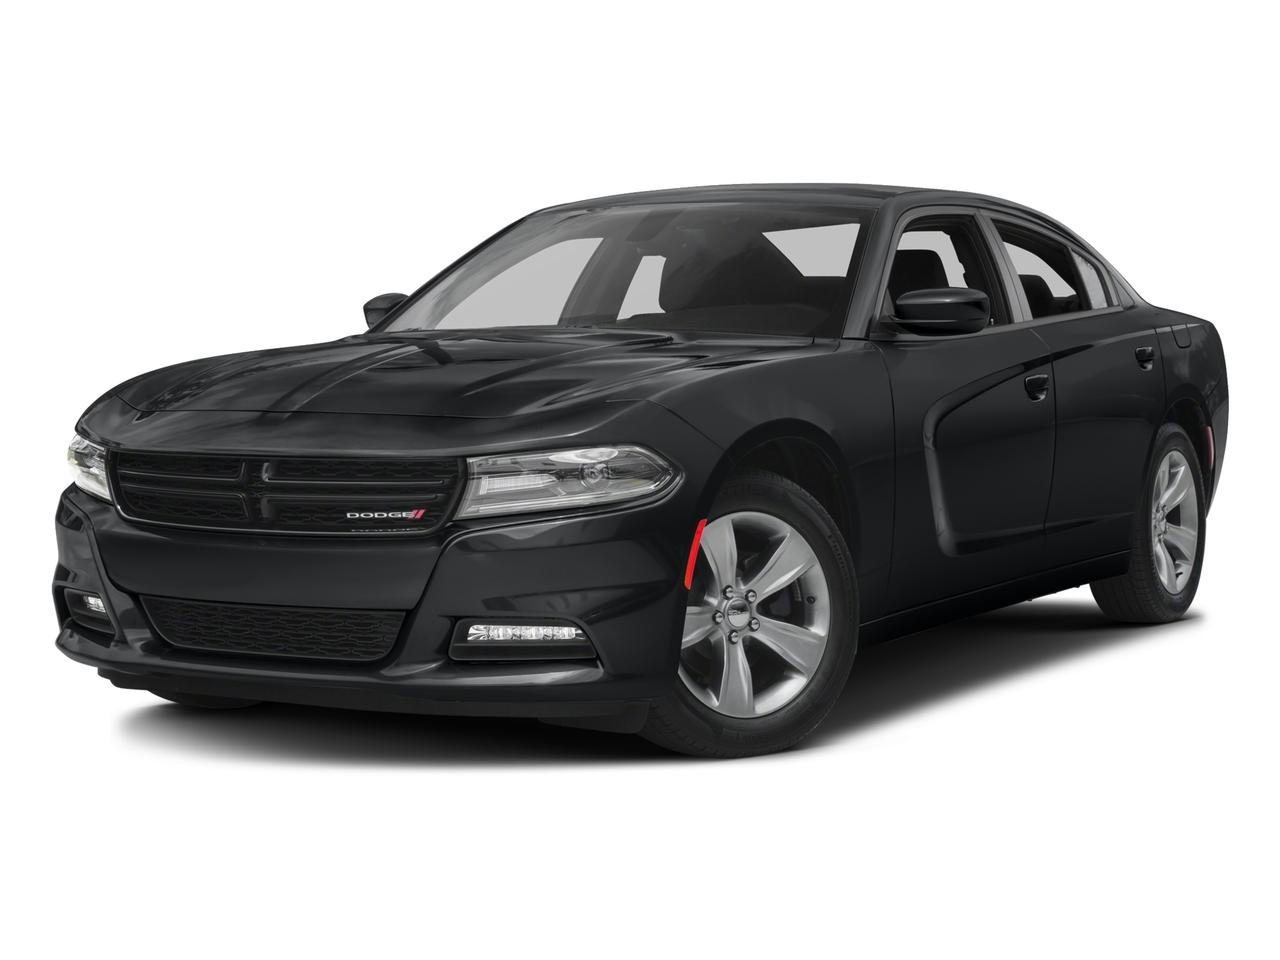 2016 Dodge Charger Vehicle Photo in Bowie, MD 20716